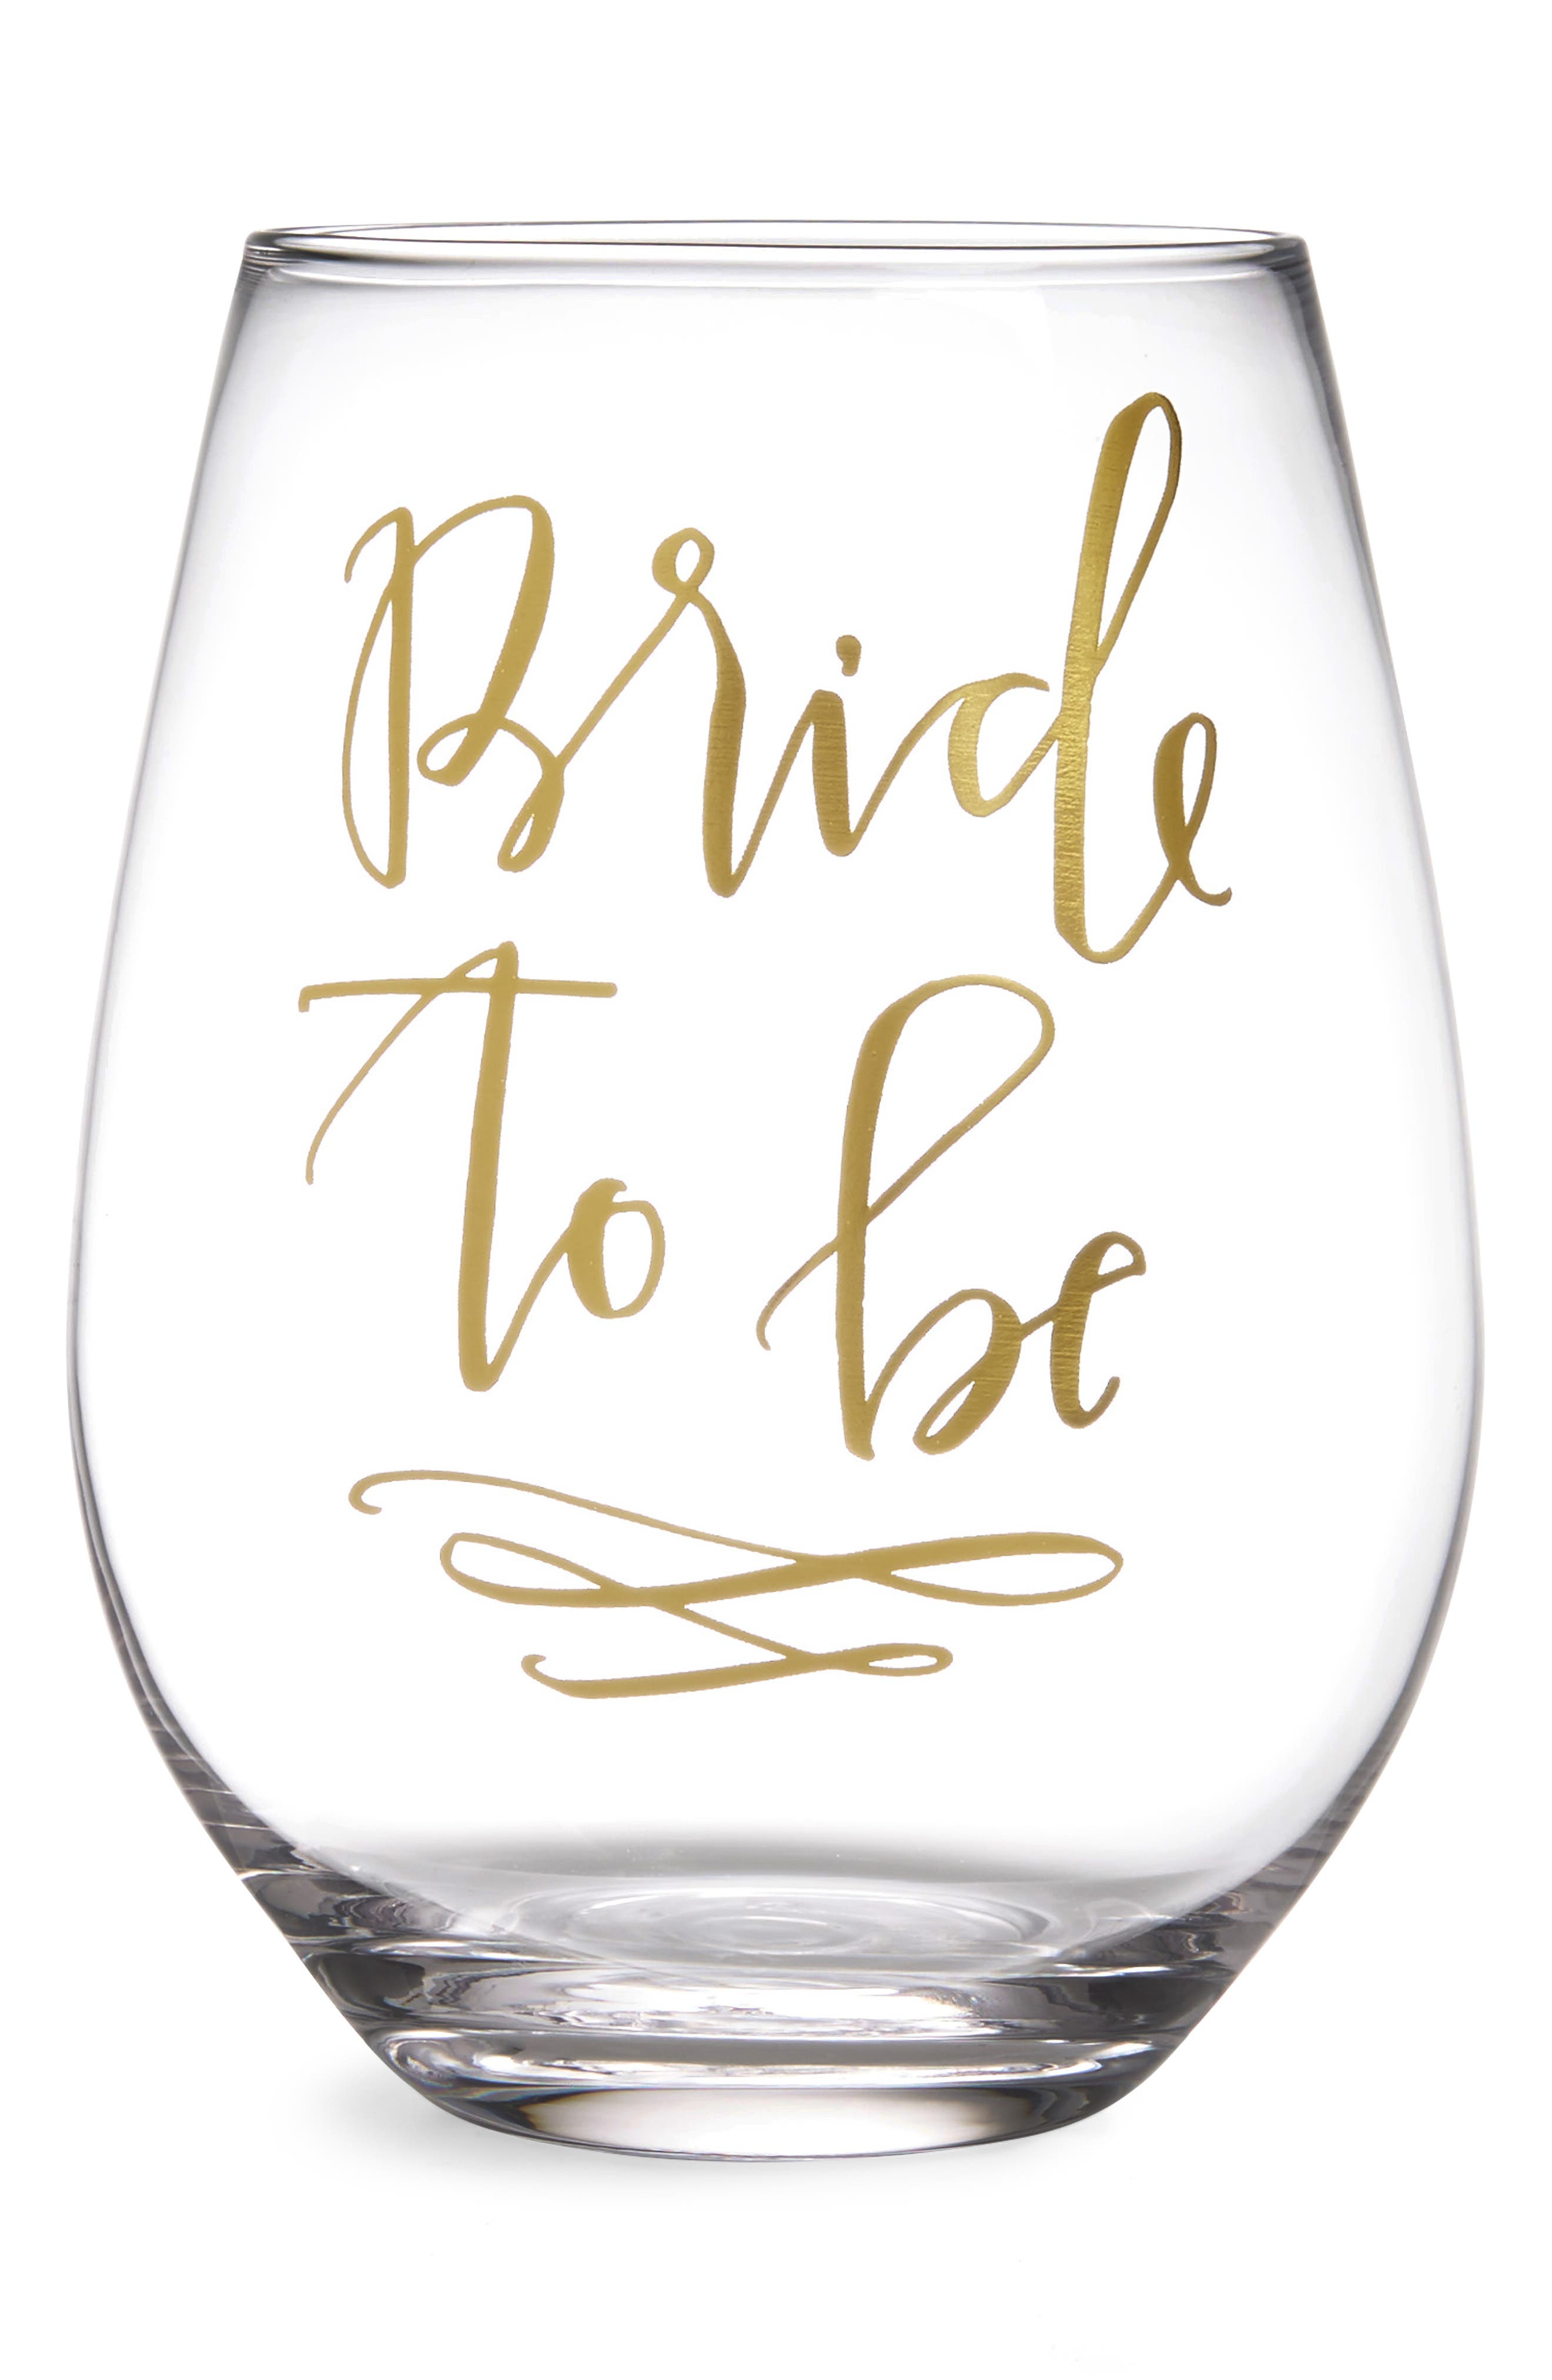 Main Image - Slant Collections Bride To Be Stemless Wine Glass